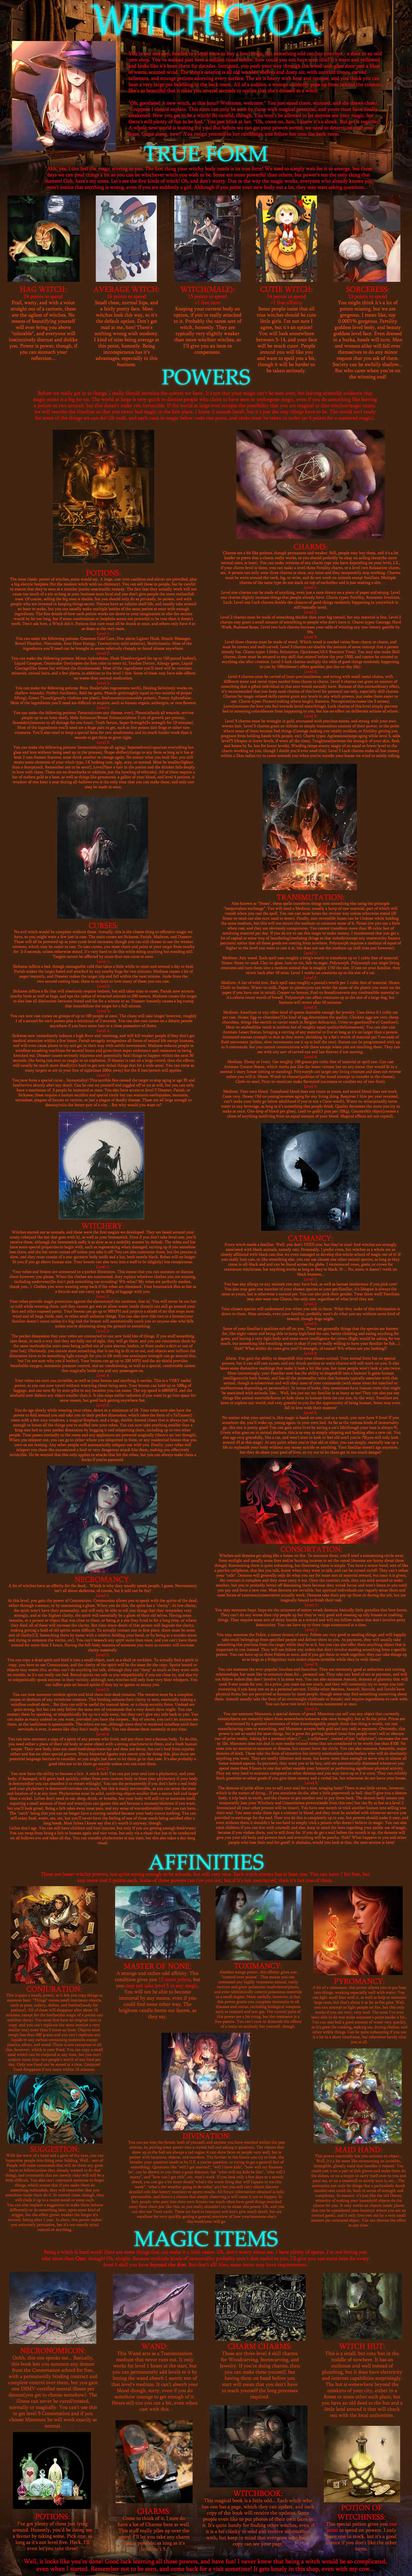 witch cyoa. .. Don't forget the unofficial non-endorsed sequel